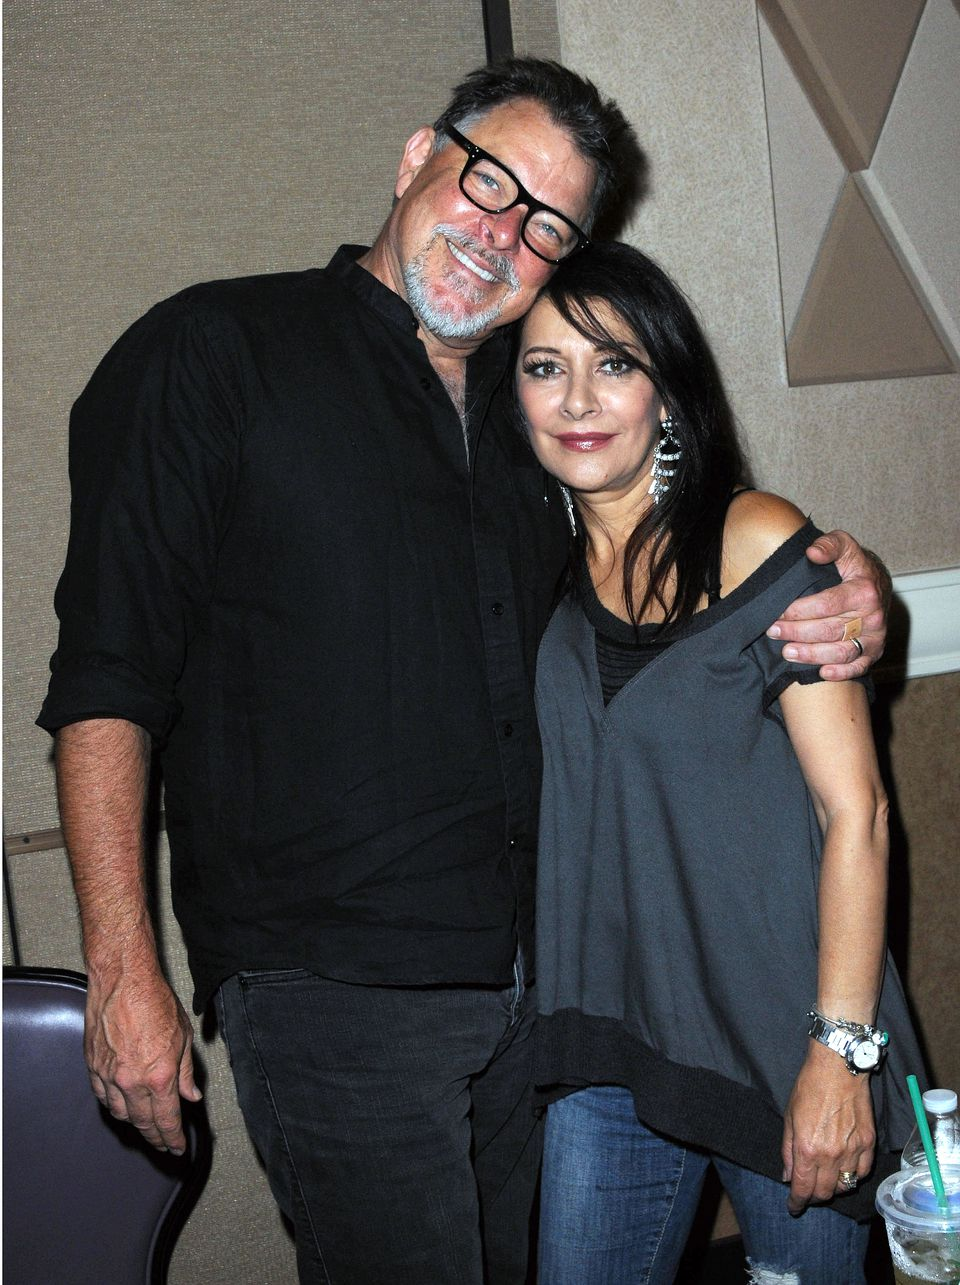 frakes chat Jonathan frakes real name jonathan scott frakes employers marvel studios titles director characteristics gender male place of birth bellefonte , pennsylvania , united states of america date of birth august 19, 1952 contents[show] personal history jonathan scott frakes is an american actor.